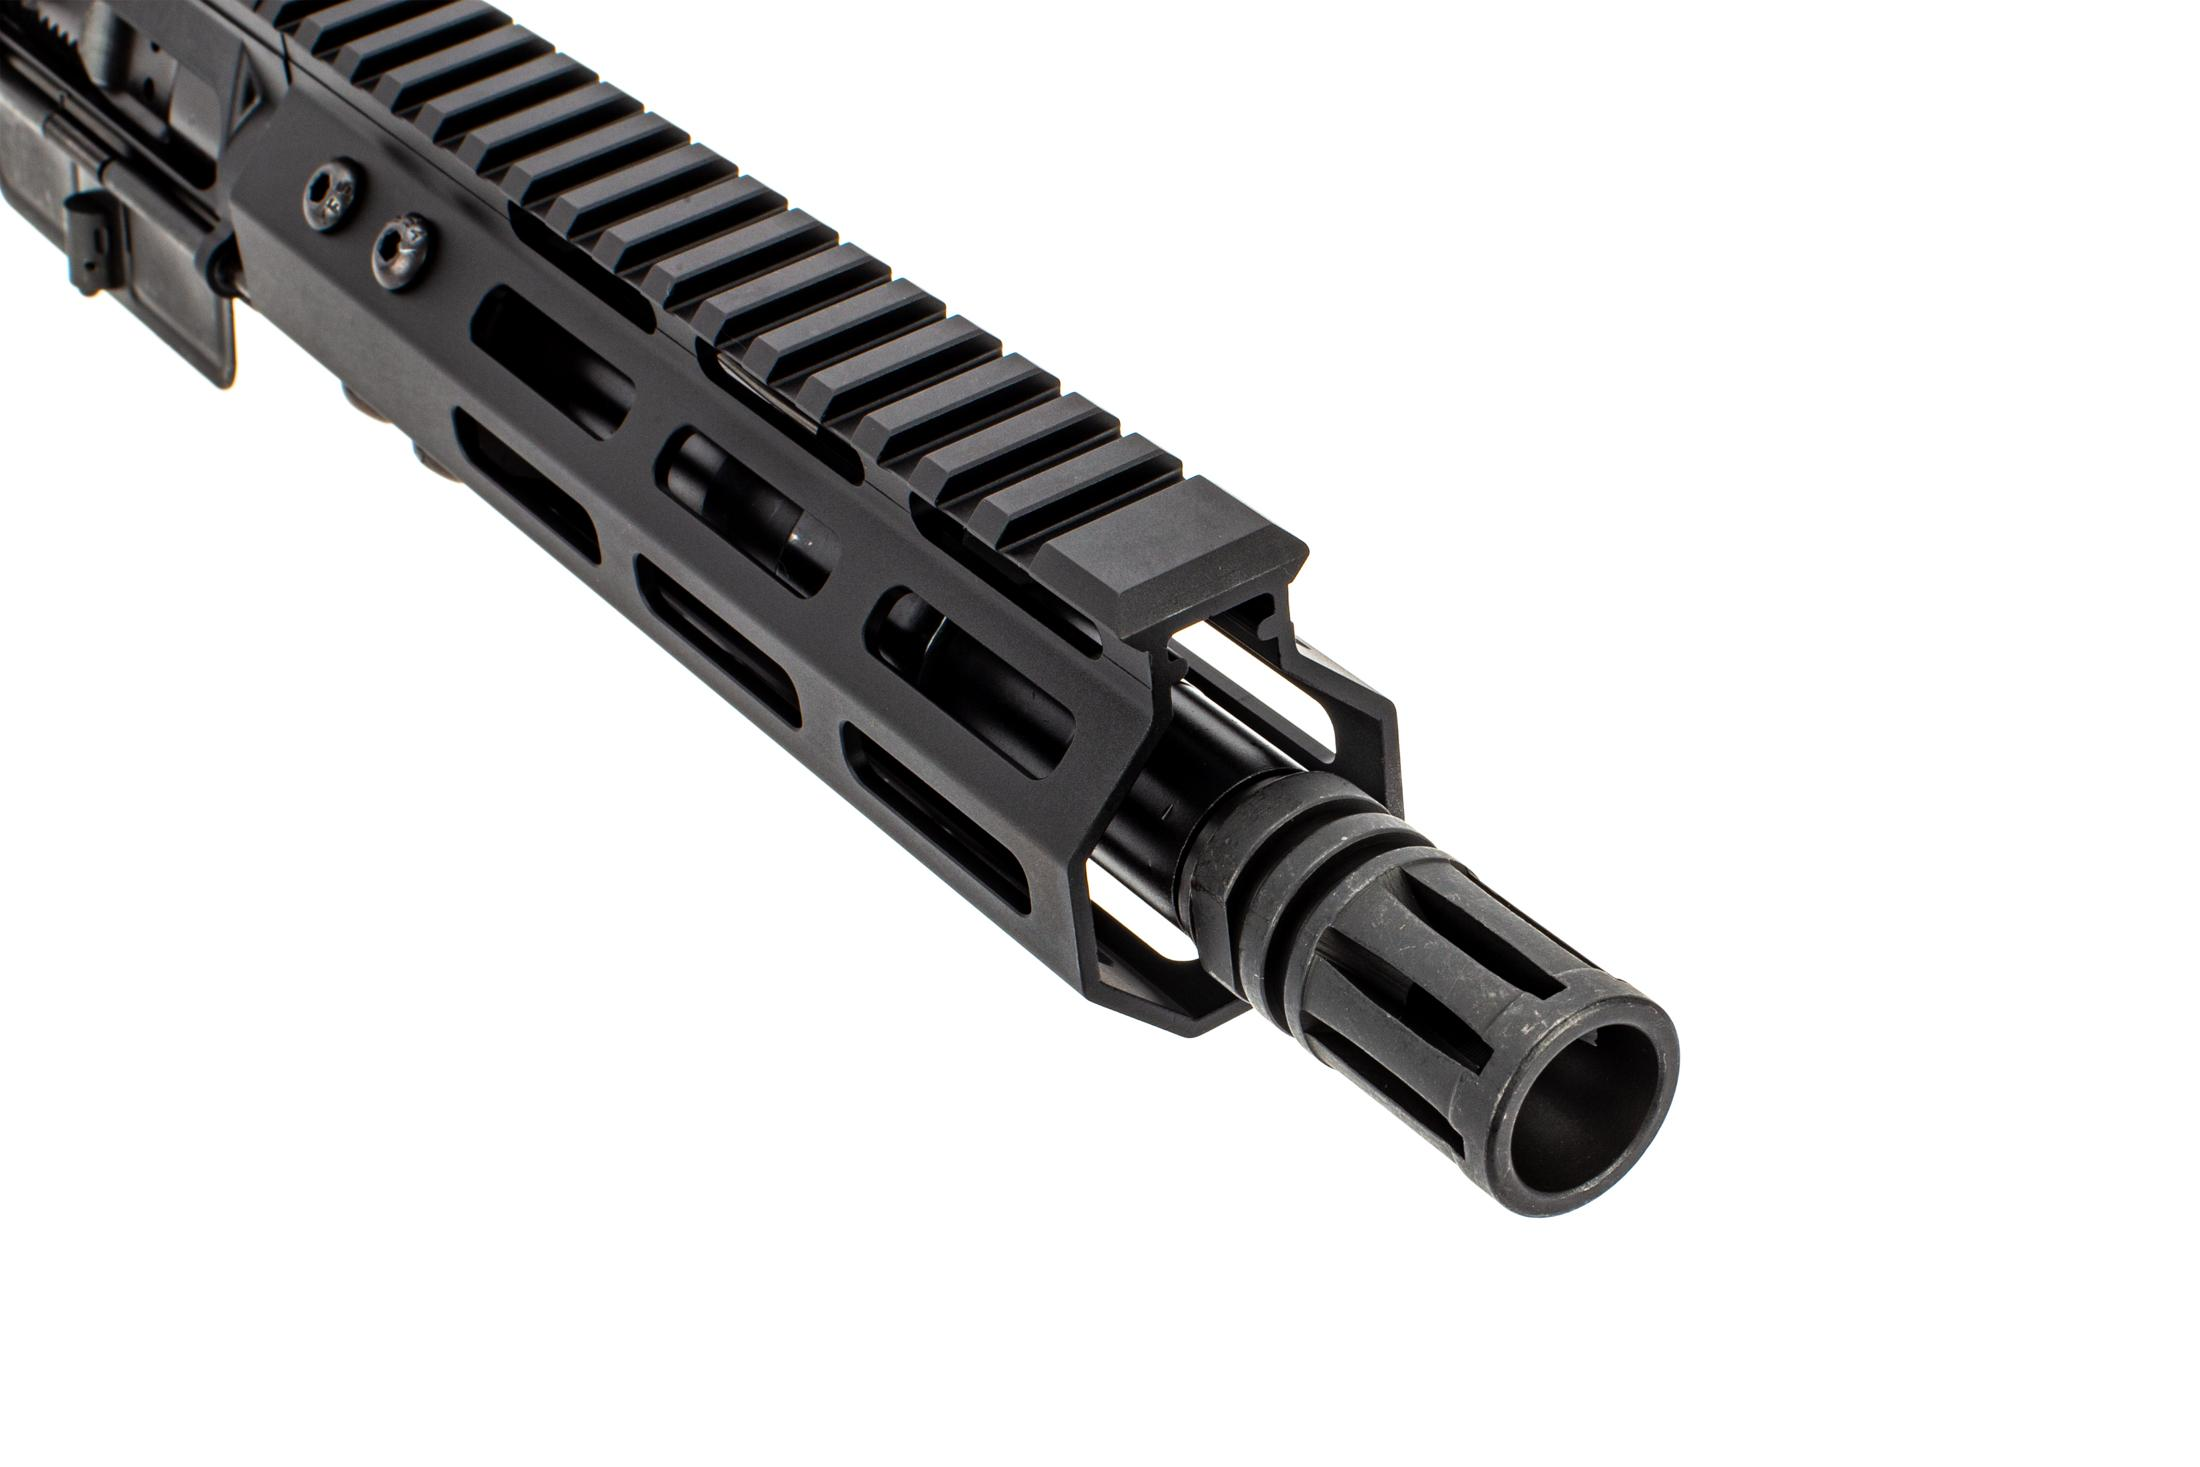 The Foxtrot Mike Products AR-15 complete upper 5.56 features an A2 flash hider